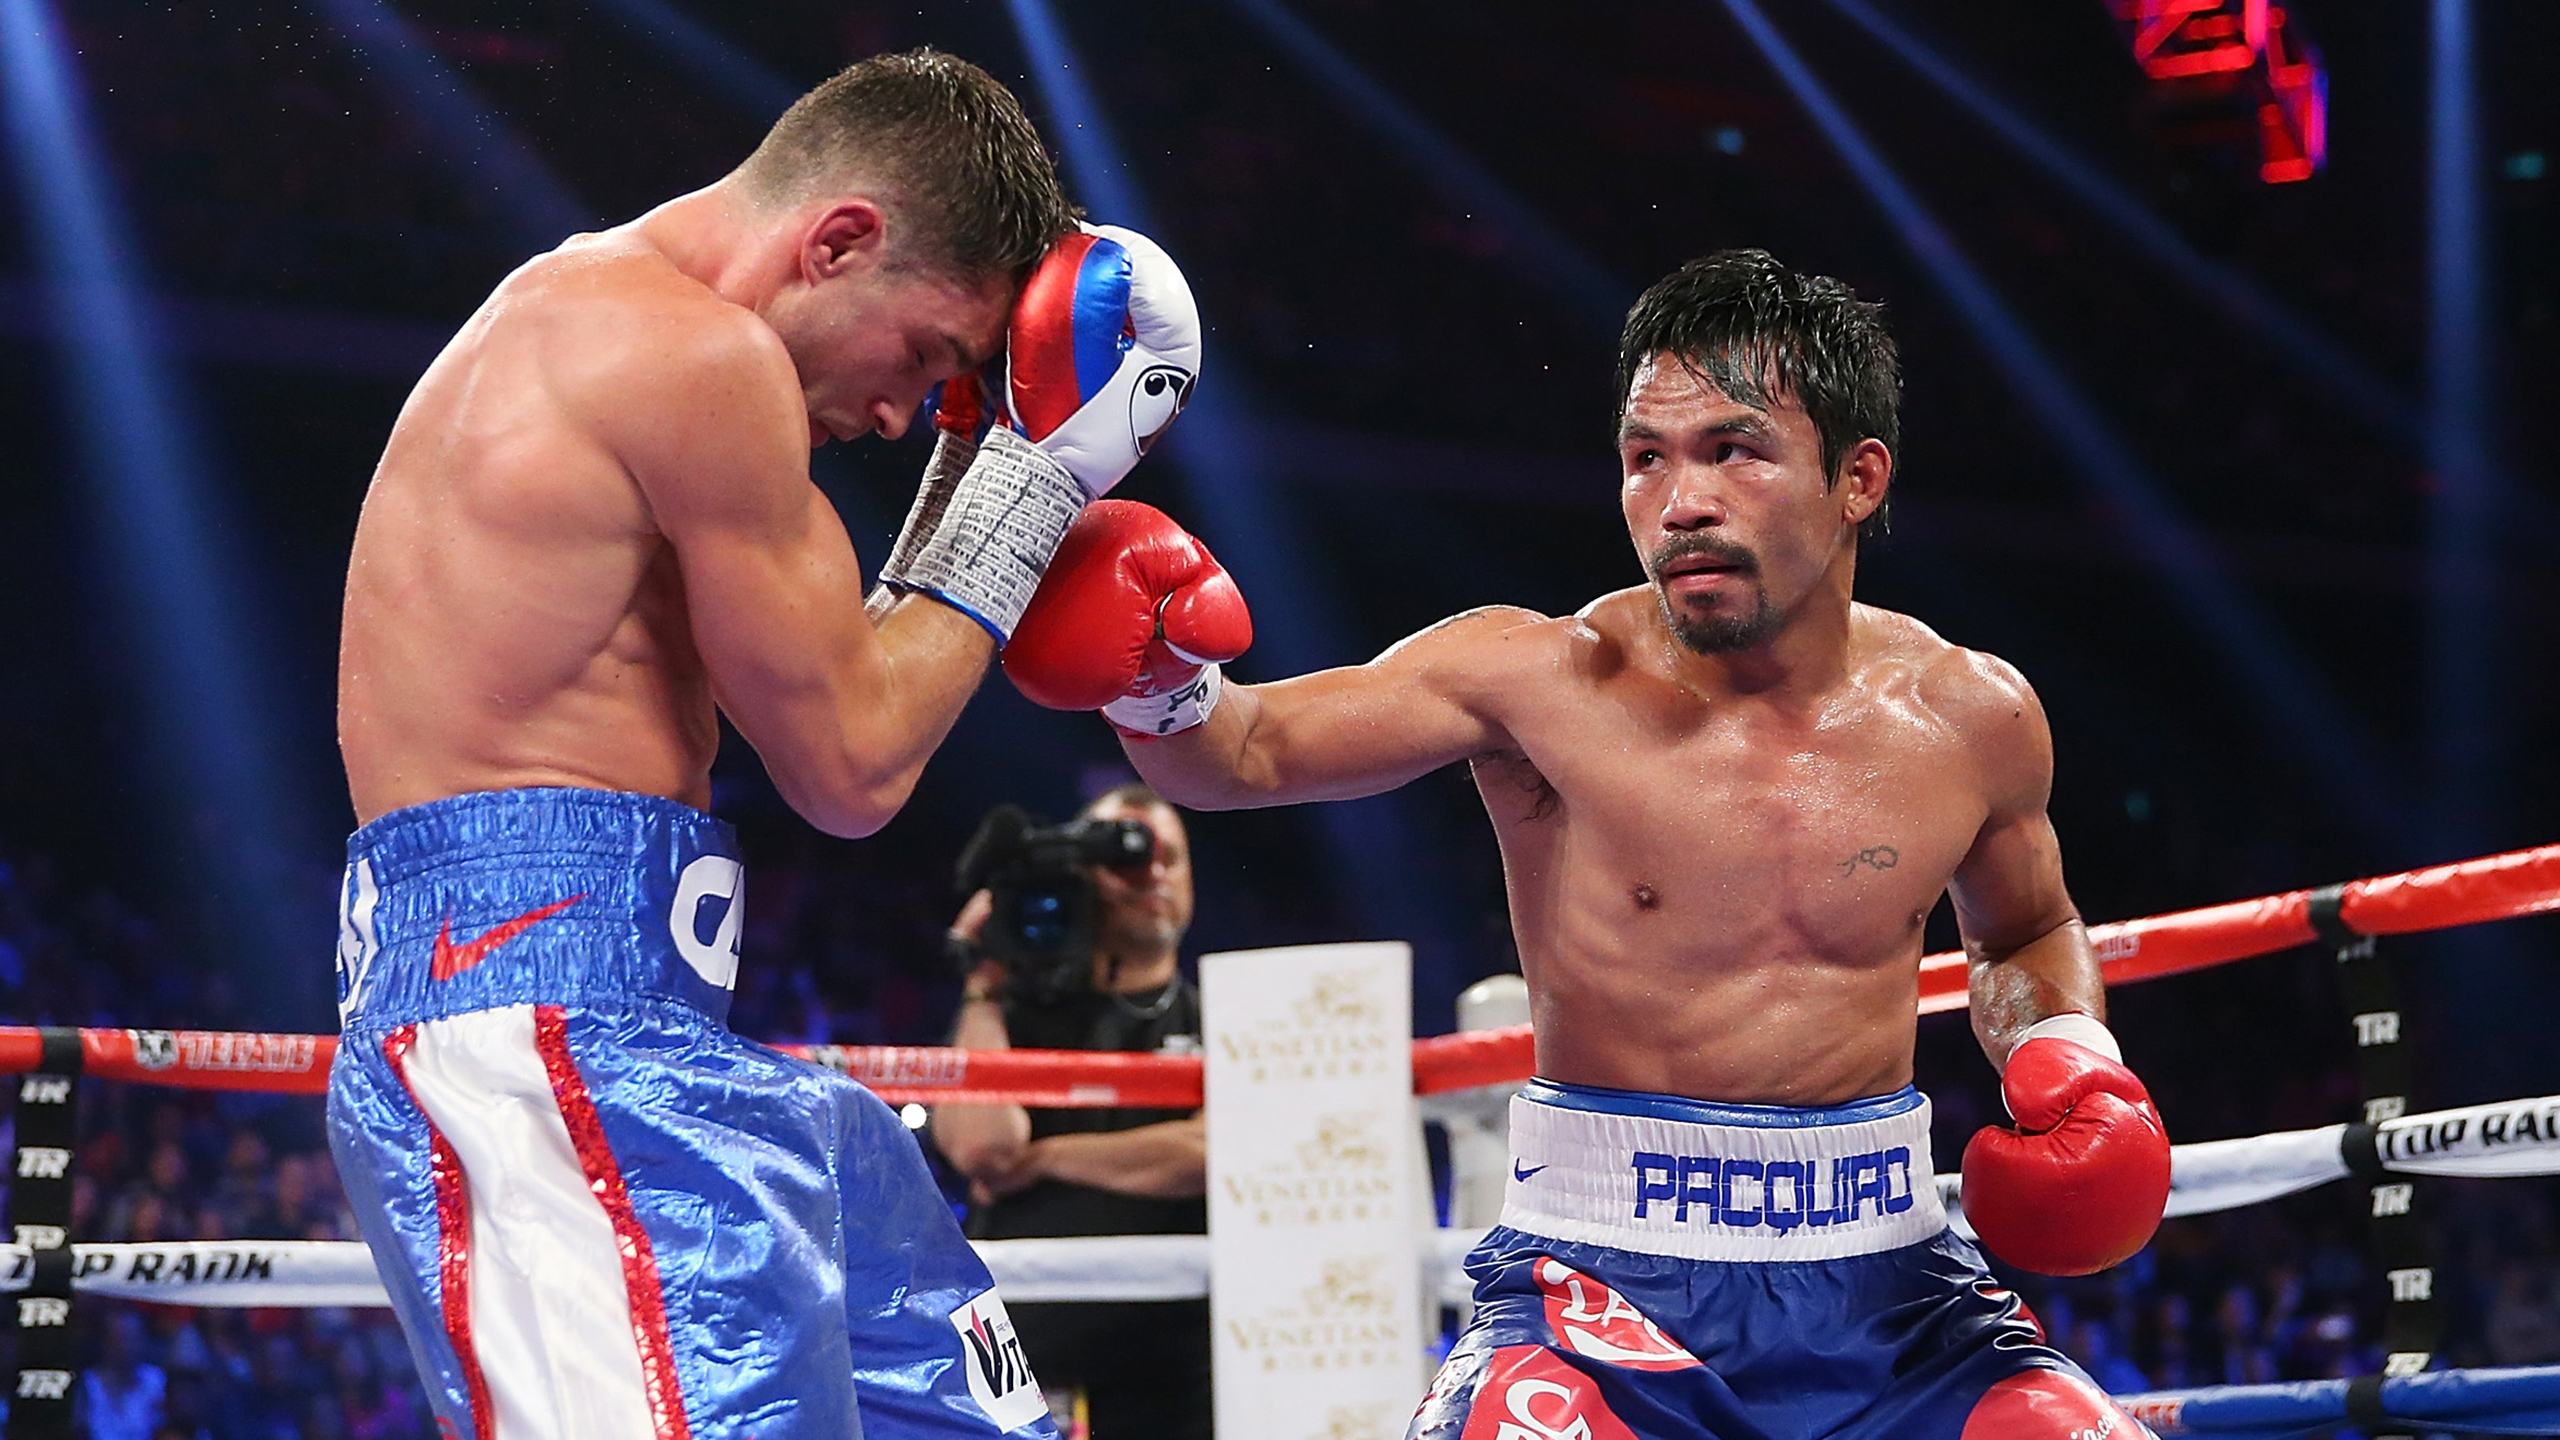 Top Rank Classic Fights: Manny Pacquiao vs. Chris Algieri